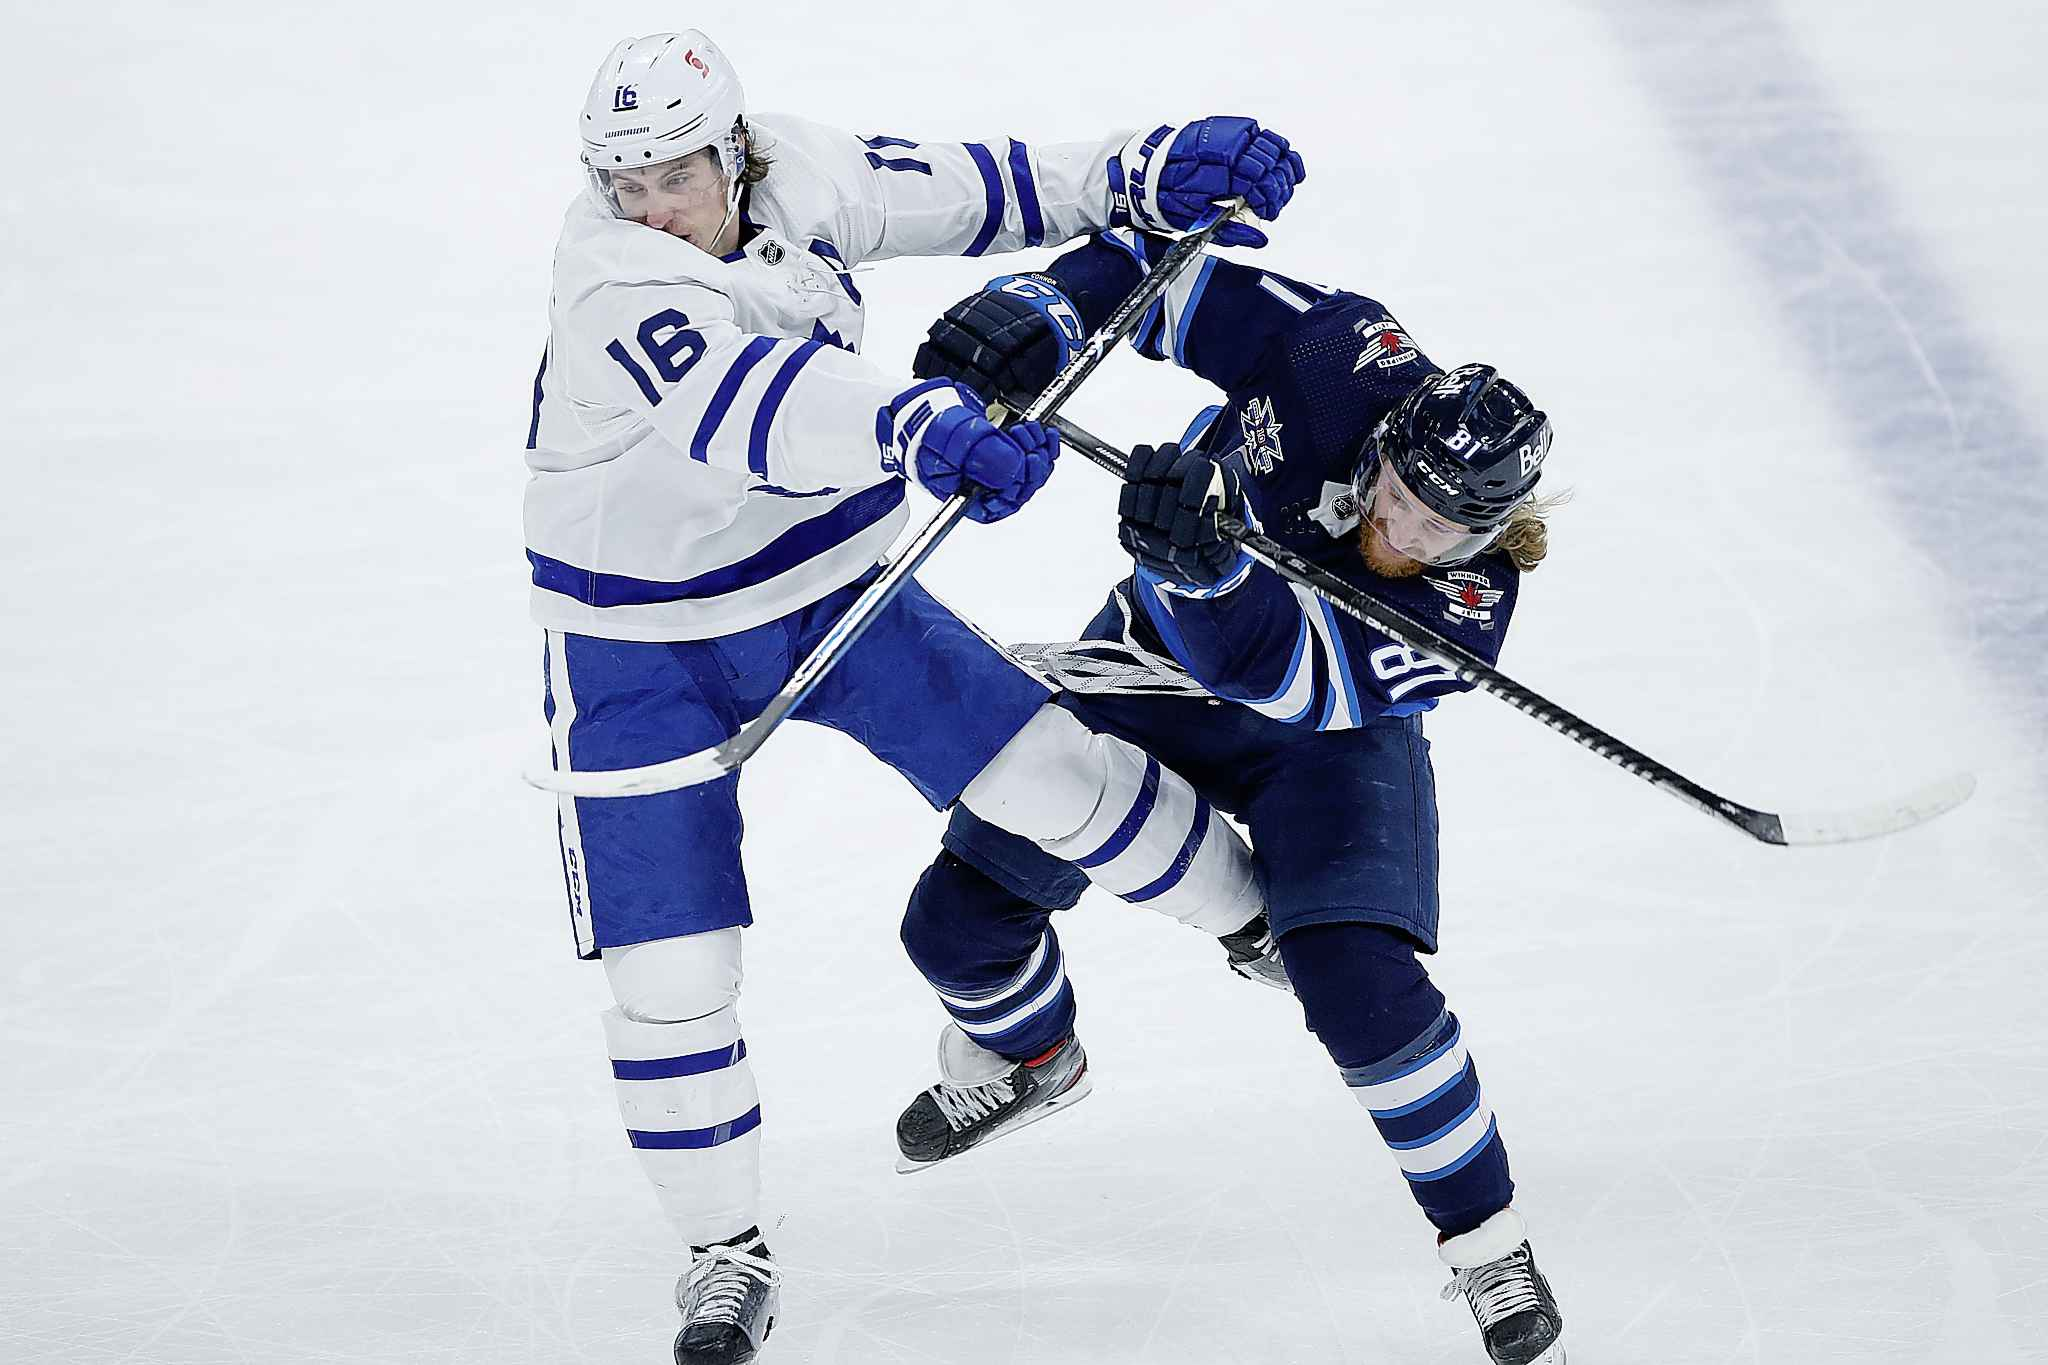 Winnipeg Jets' Kyle Connor (81) and Toronto Maple Leafs' Mitchell Marner (16) collide during the first period. (John Woods / The Canadian Press)